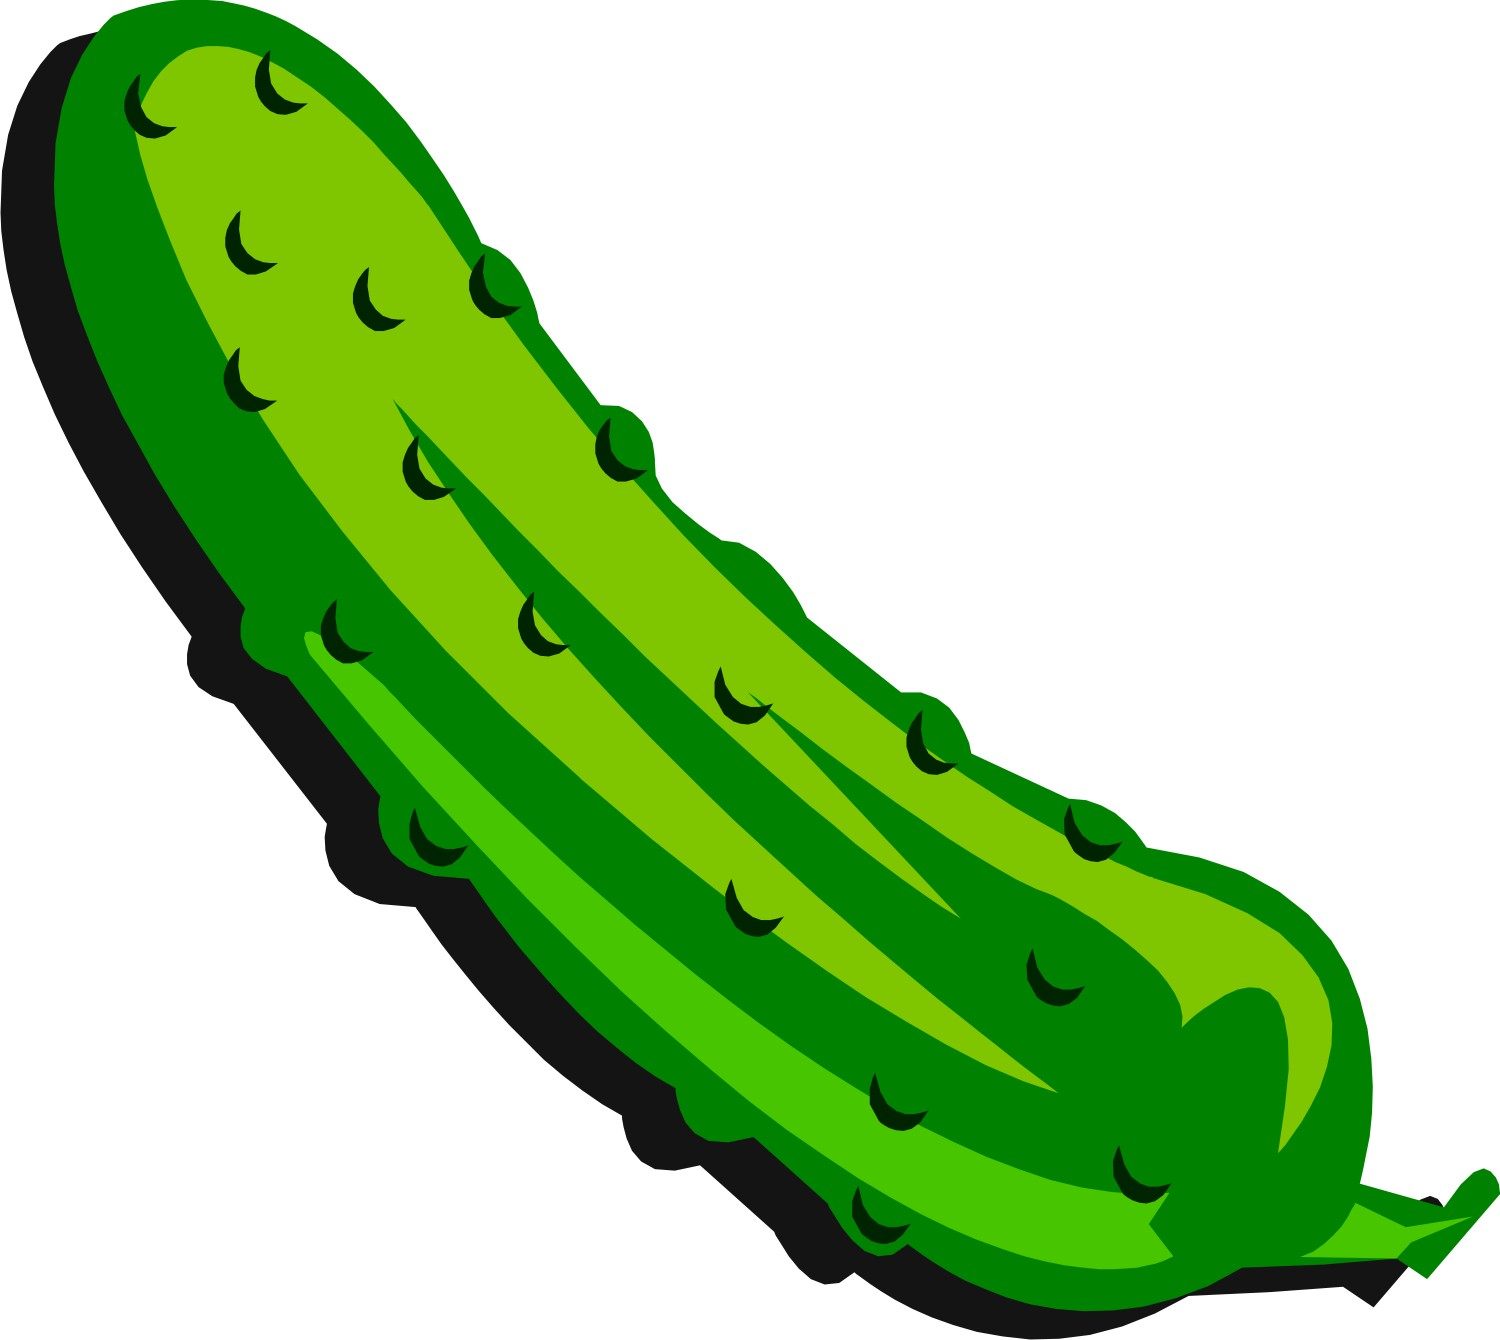 Free Pickles Jar Cliparts, Download Free Clip Art, Free Clip.